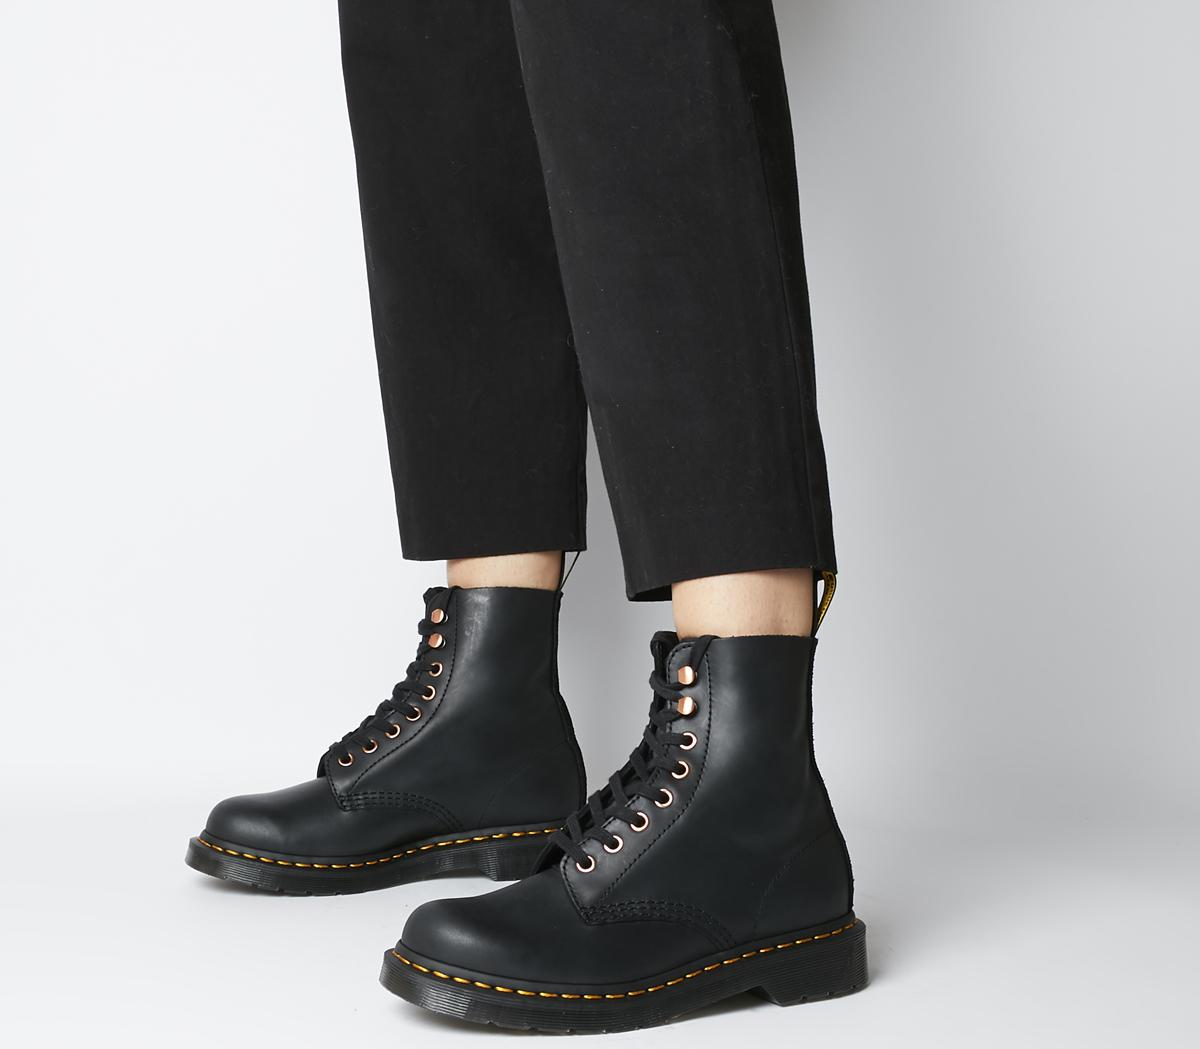 Dr. Martens 8 Eyelet Soap Stone Boots